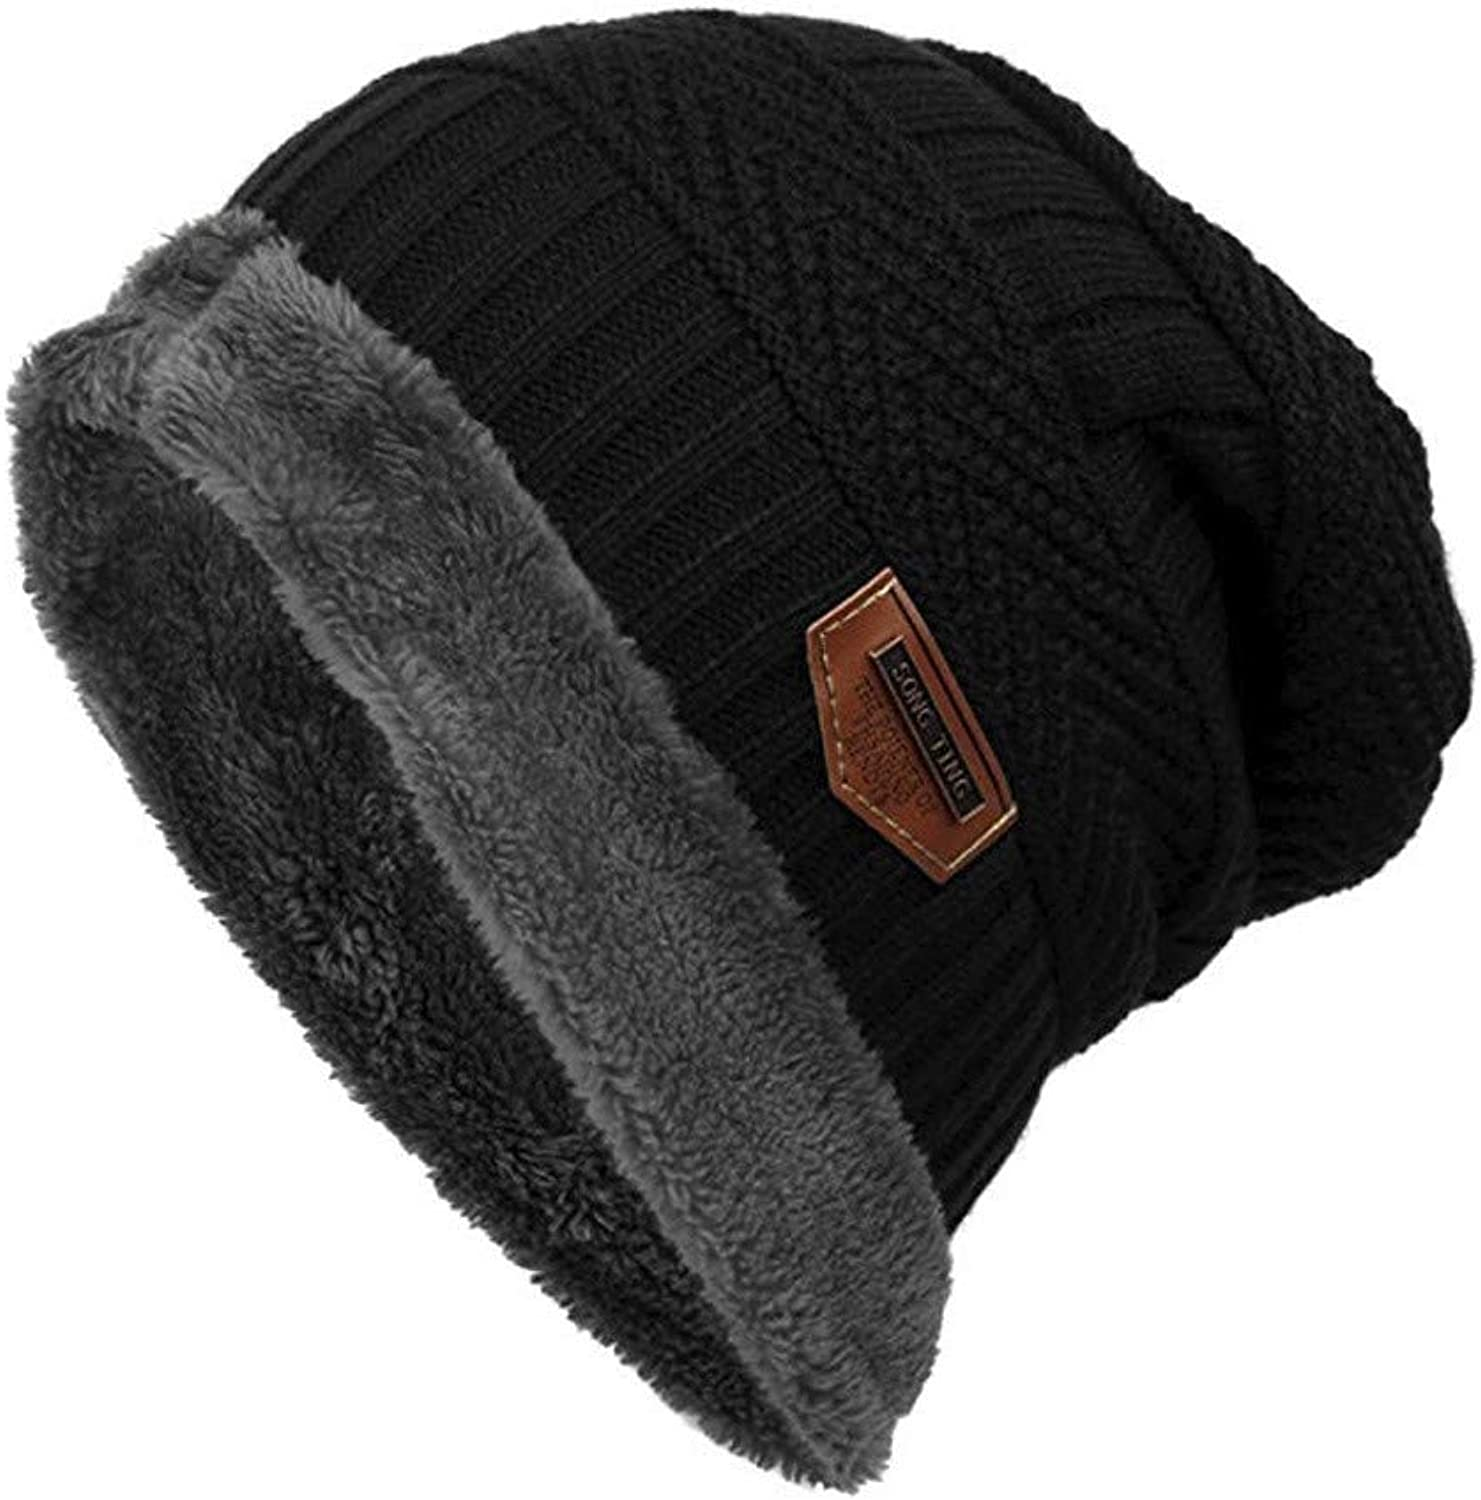 ILXHD Beanie Hat for Men and Women Winter Warm Hats Knit Slouchy Thick Skull Cap